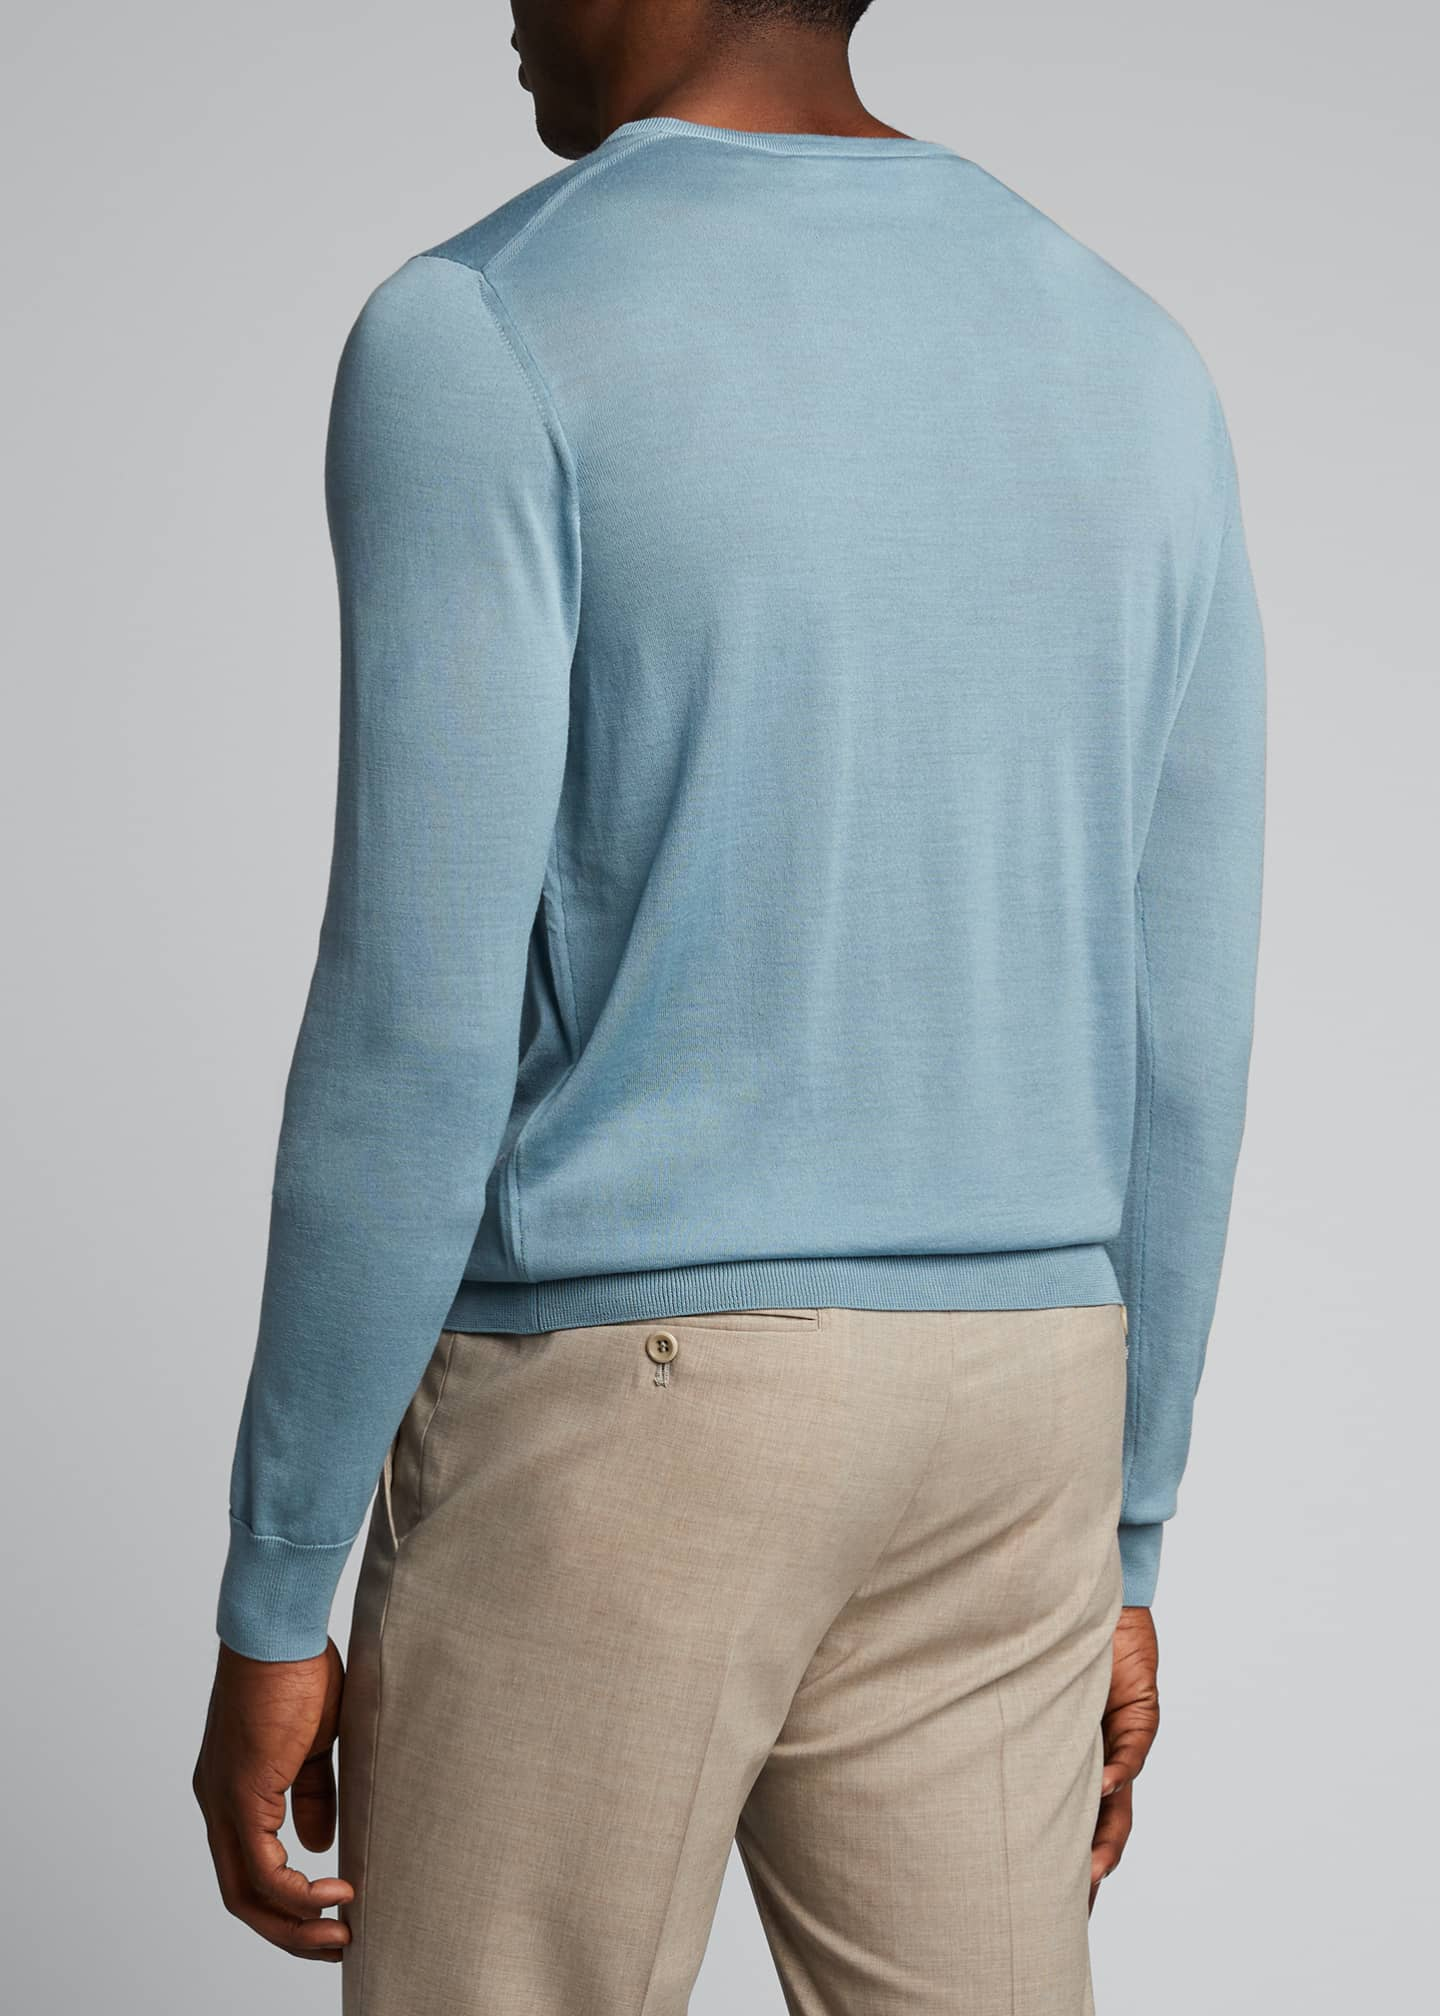 Image 2 of 5: Men's Plain Knit Wool Sweater